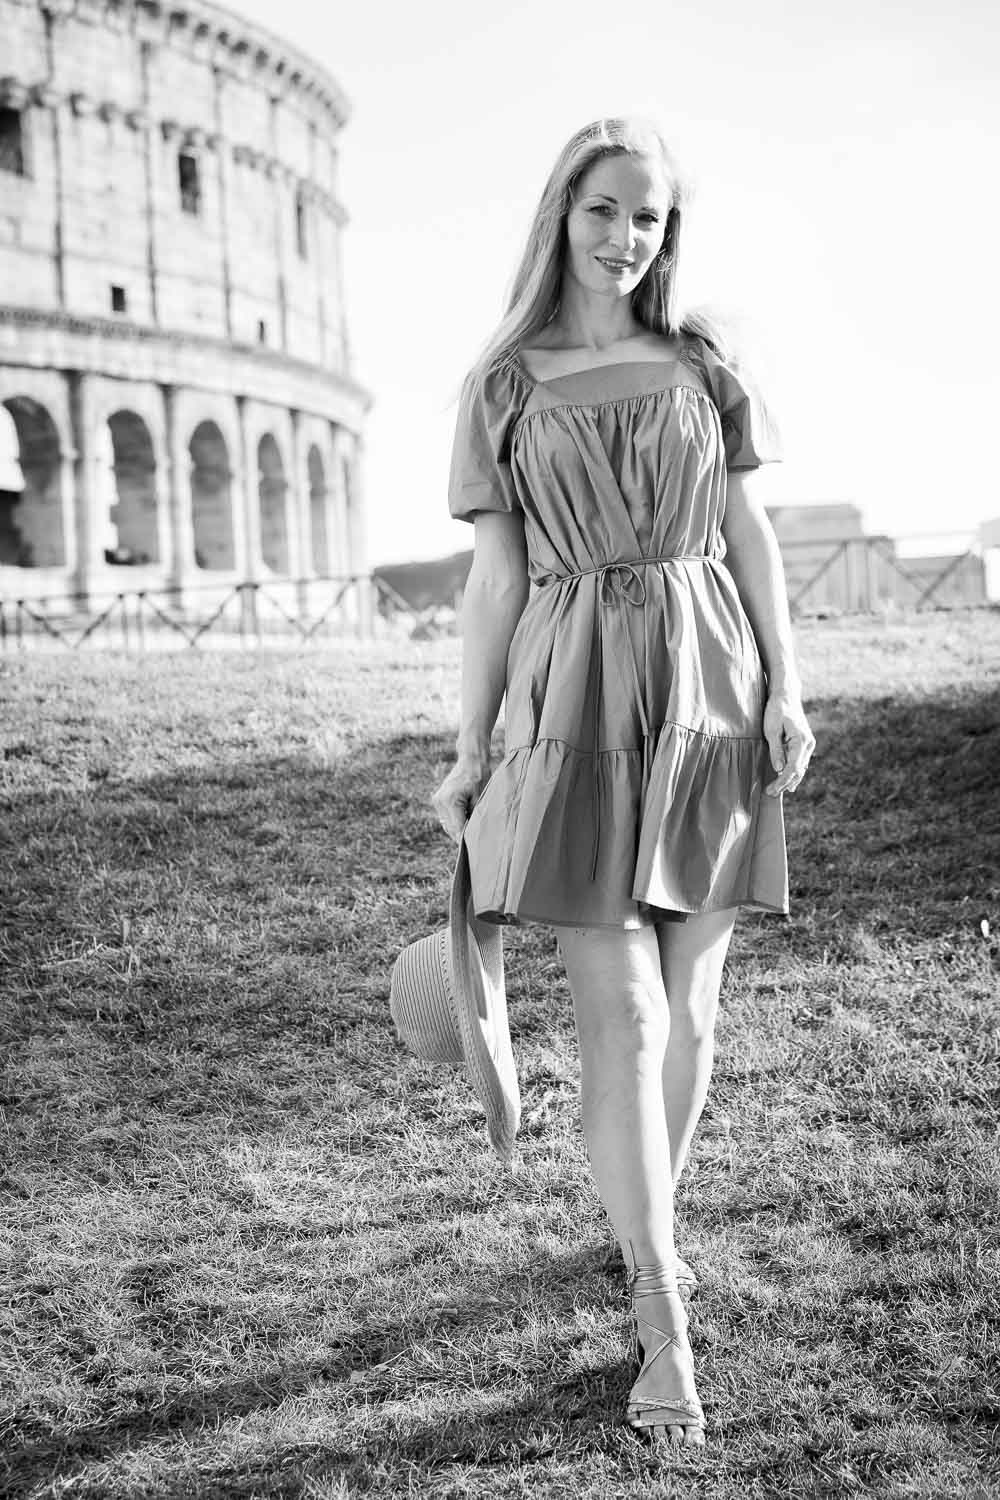 Strolling down in front of the Coliseum in black and whitephotography